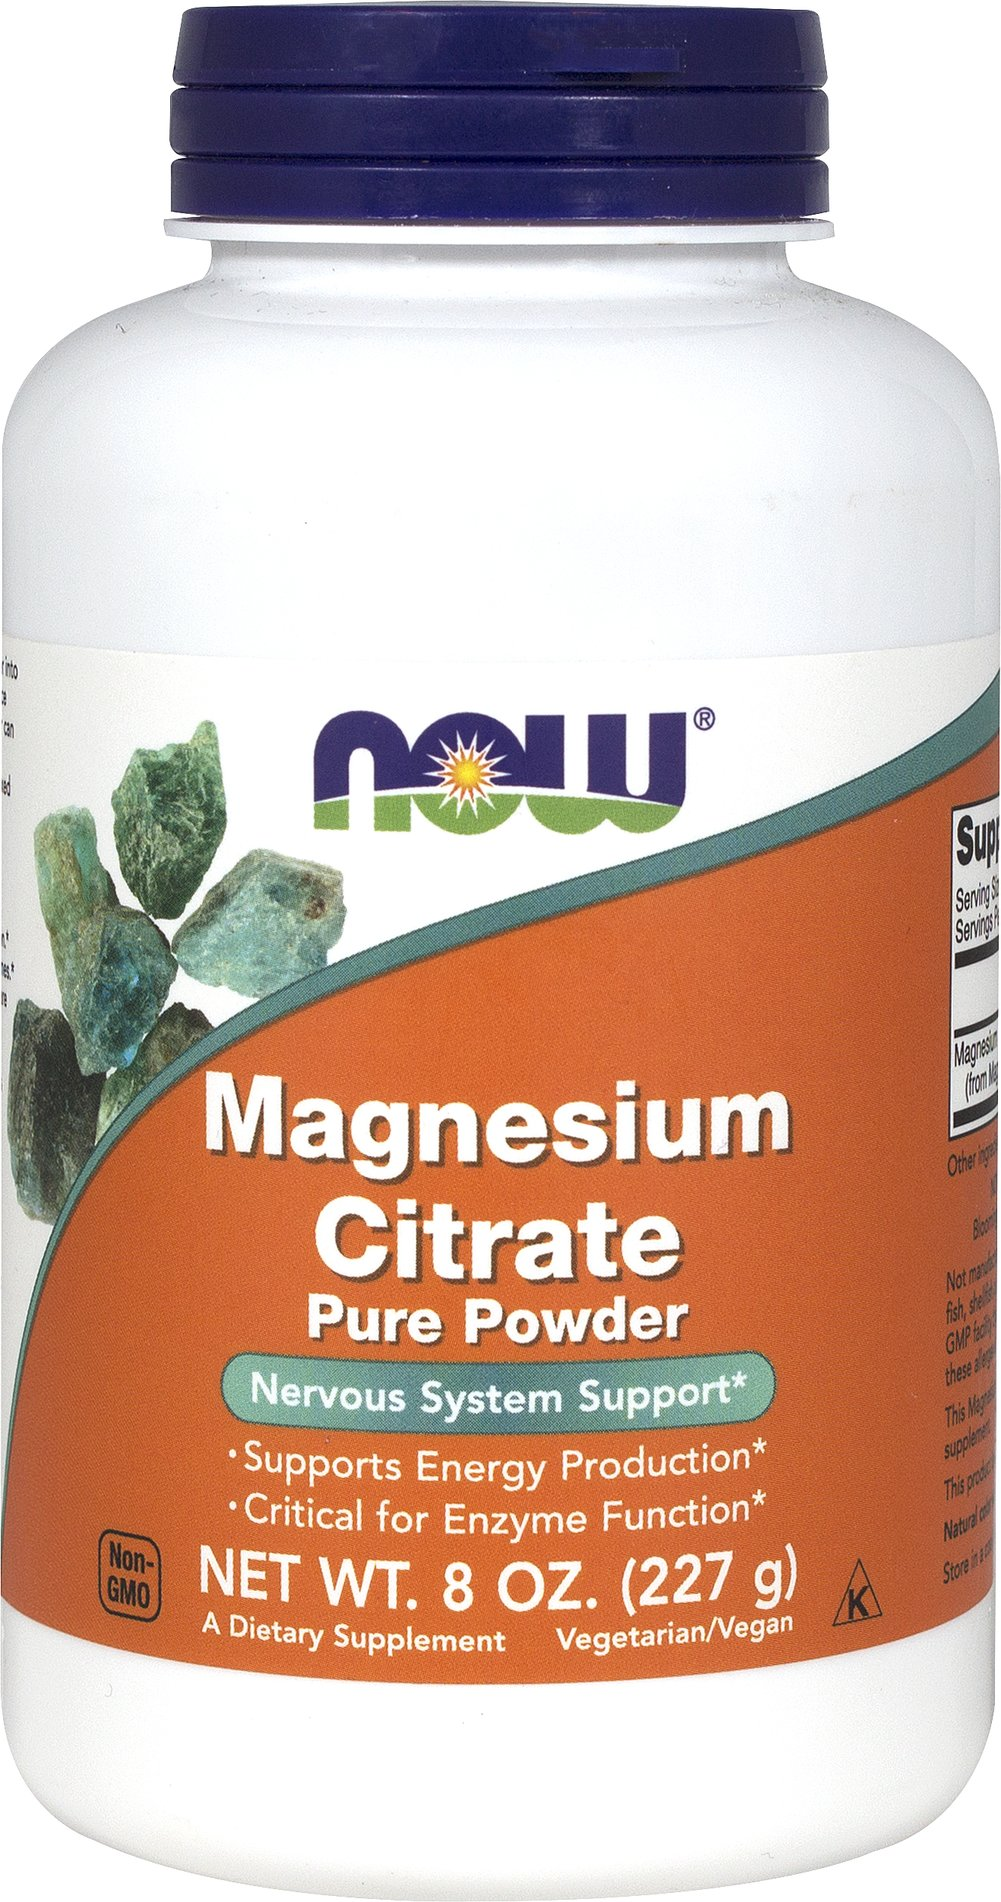 Magnesium Citrate Powder 227 grams <p><strong>From the Manufacturer's Label</strong></p><p>100% Pure Powder</p><p>Supports Energy Production**</p><p>Critical for Enzyme Function**</p><p>Magnesium is a mineral that is critical for energy production and metabolism, muscle contraction, nerve impulse transmission, and bone mineralization.**  It is a required cofactor for an estimated 300 enzymes.  NOW®Magnesium Citrate Powder